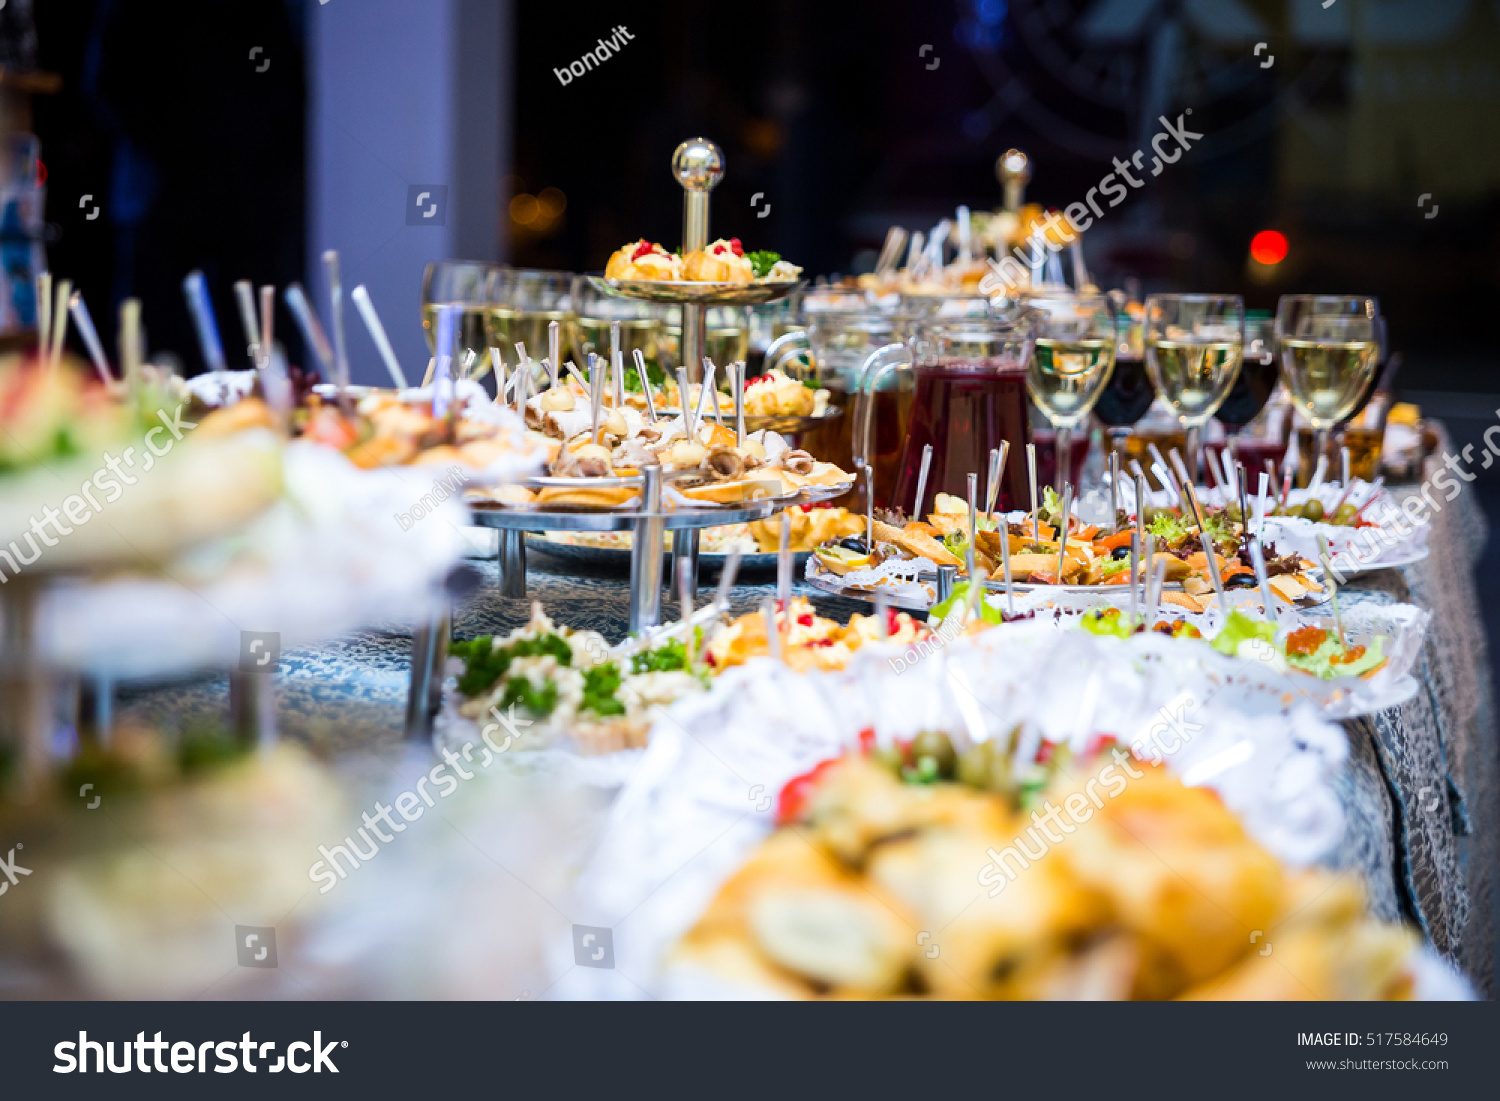 Buffet table canape sandwiches snacks holiday stock photo for Canape table